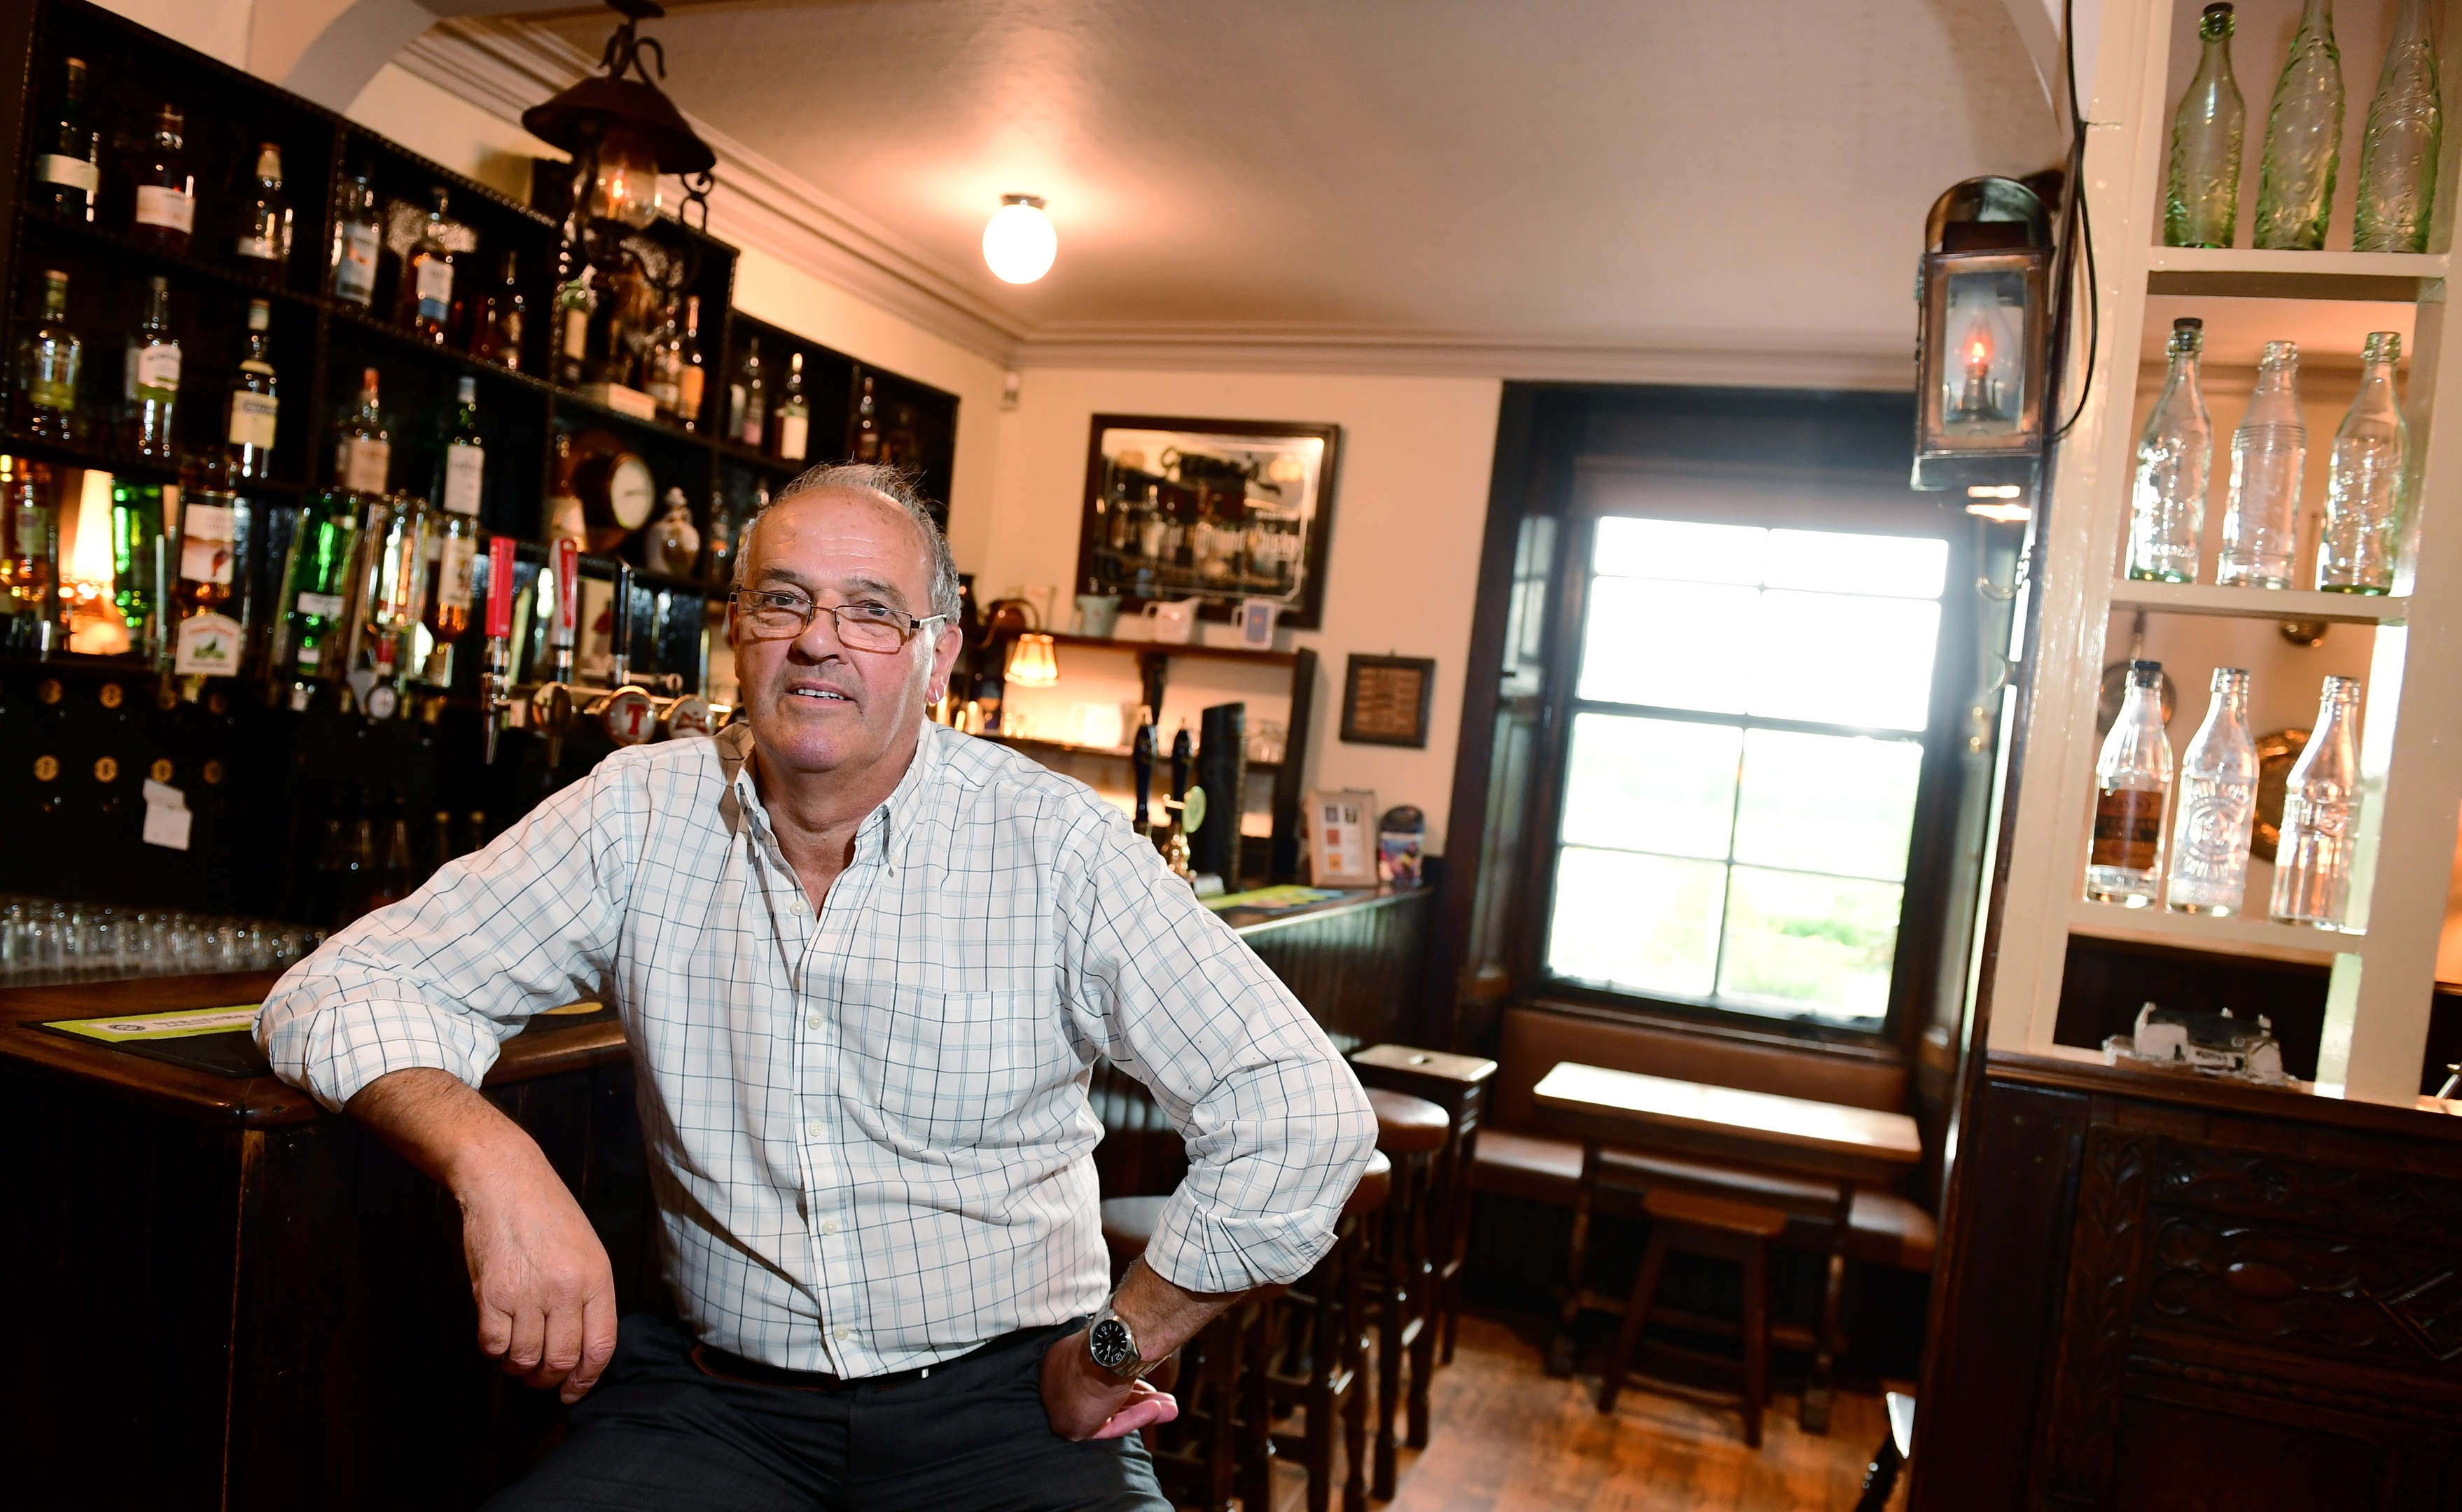 Sandy Law at the Lairhillock Inn, claims his business lost money for nothing after a planned road closure didn't go ahead. (Picture by Kami Thomson)